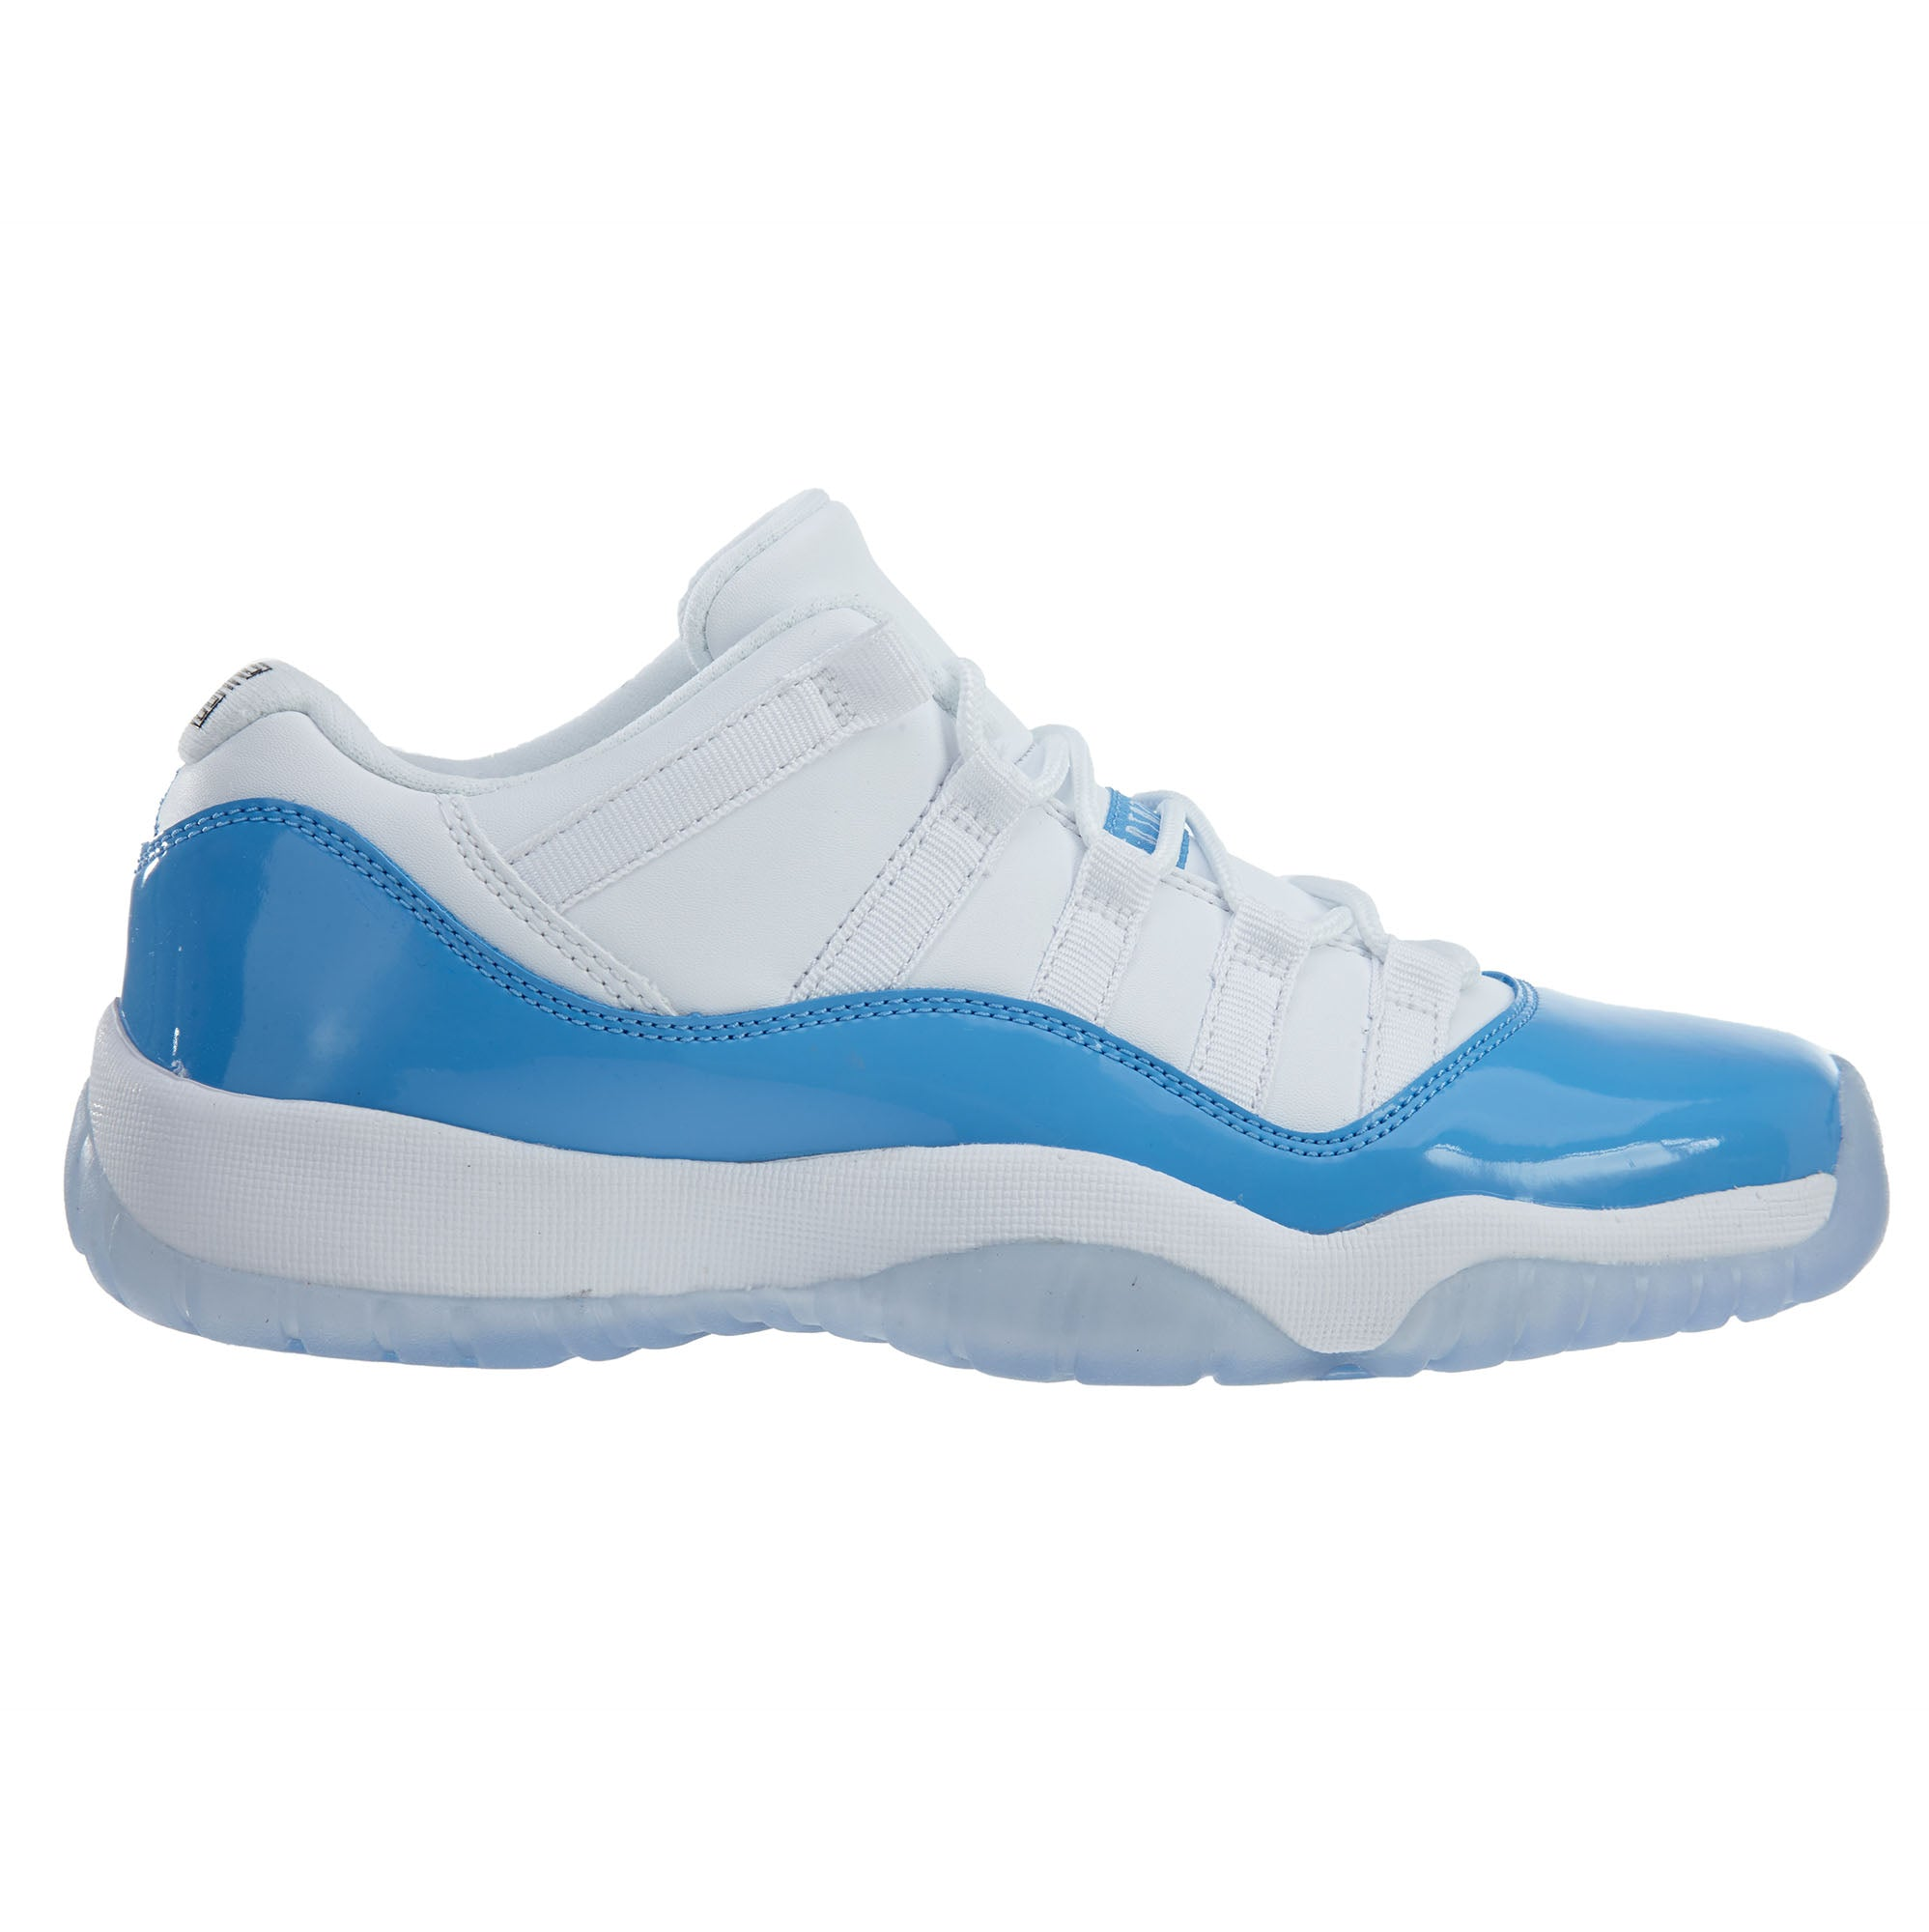 bf39e9b00abd Air Jordan 11 Retro Low Big Kids Style   528896 - 734 Kicks